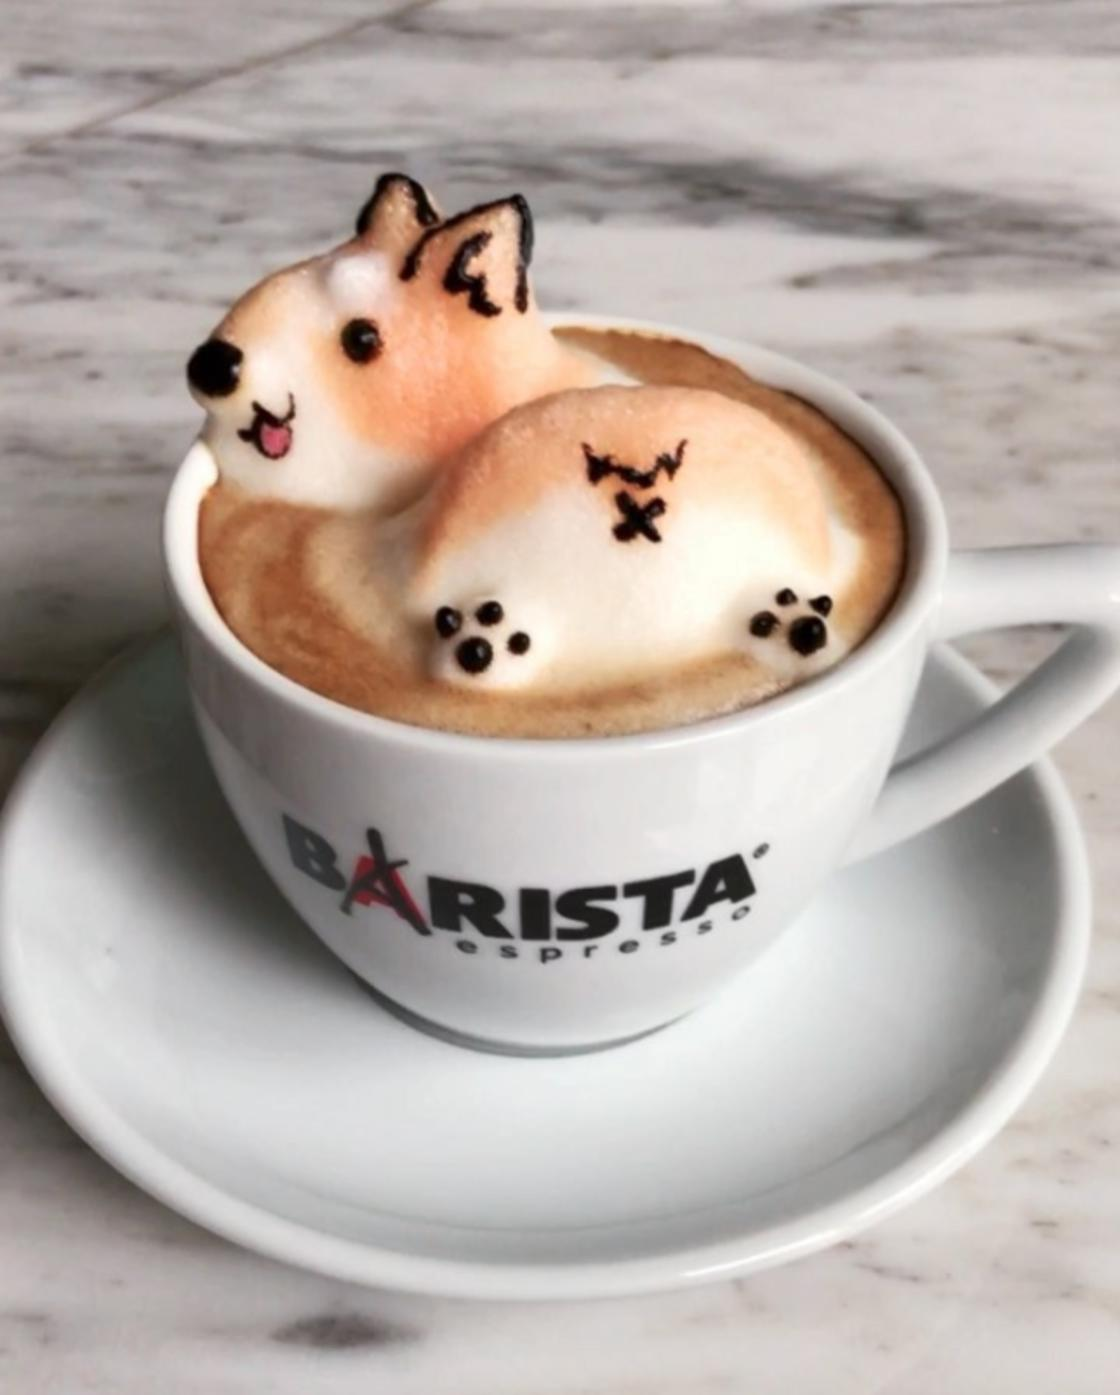 3D Latte Art – The adorable creations of a young artist